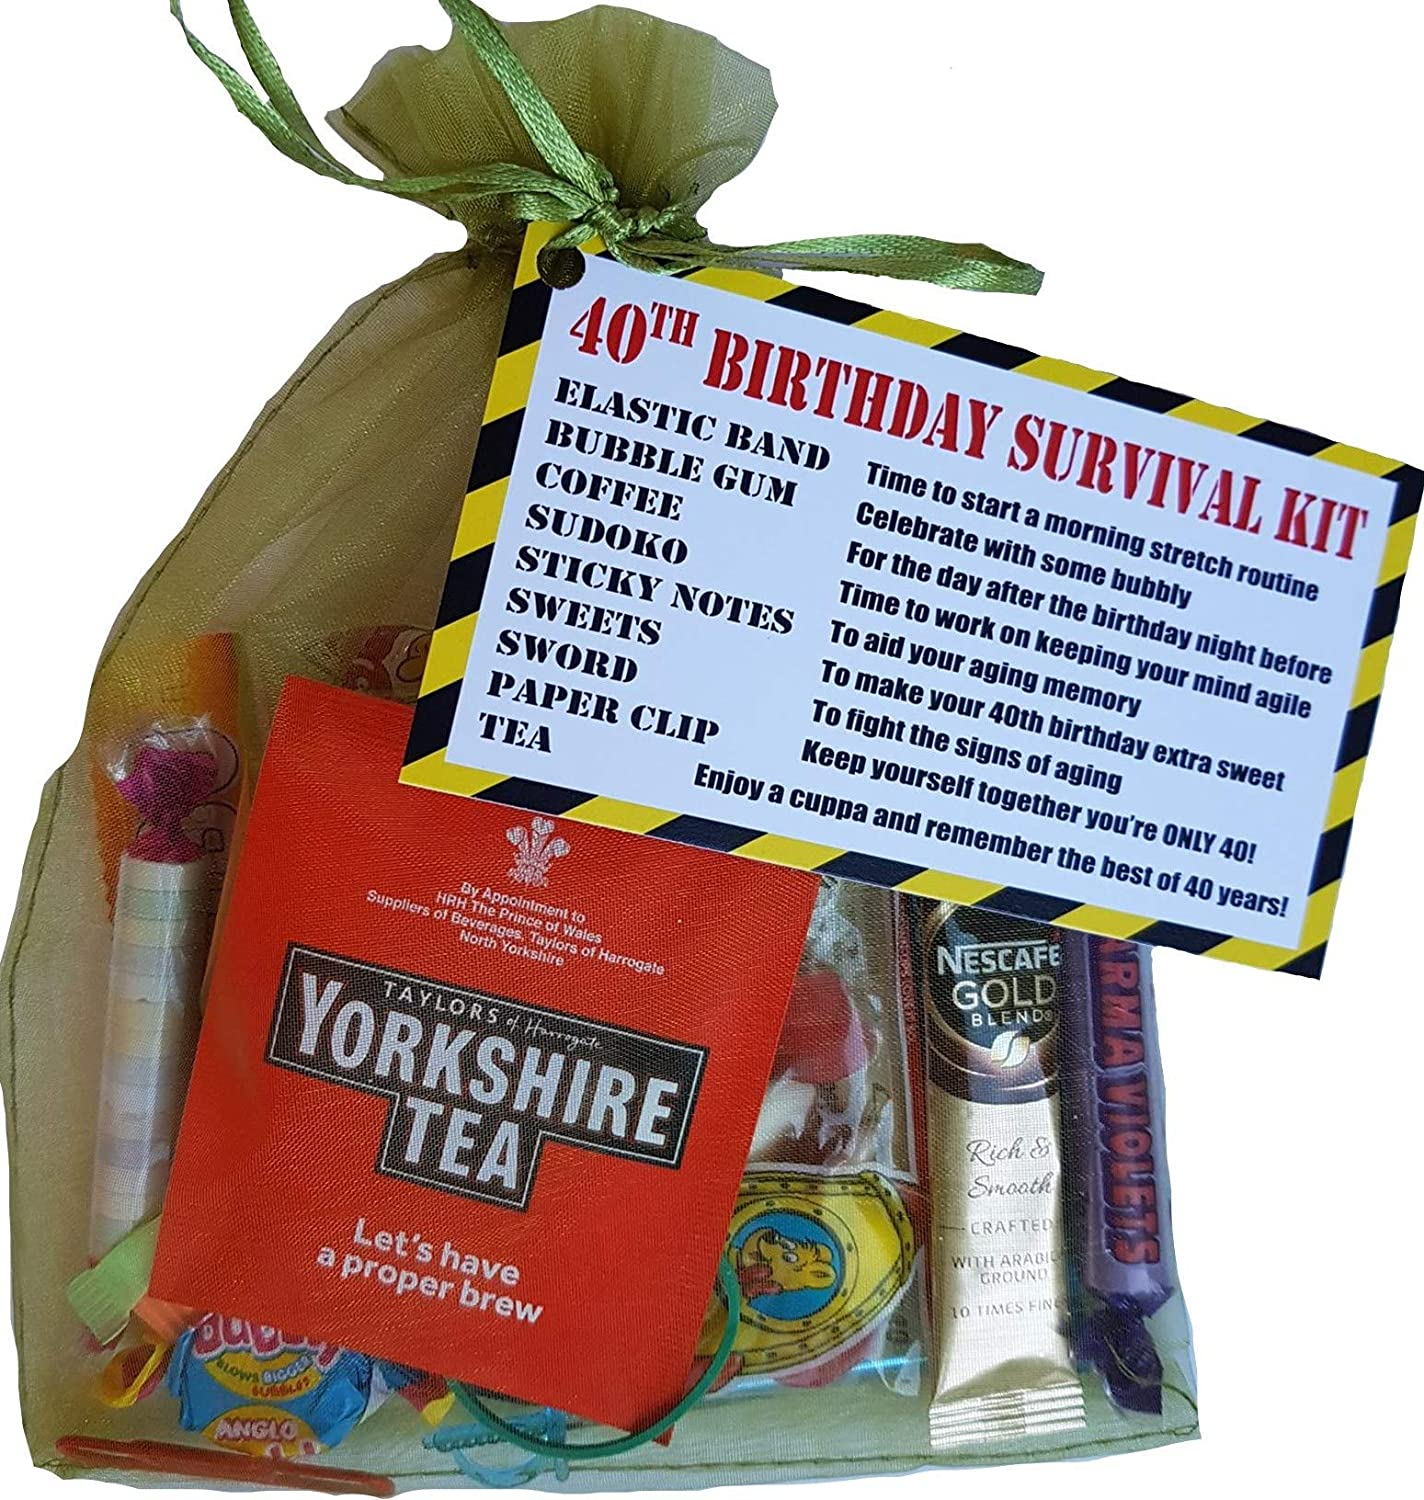 40th Birthday Survival KIT Gift Present Card Fun Cheeky Funny Idea For Him Her Men Women Grandad Mum Dad Brother Friend Or Sister Amazoncouk